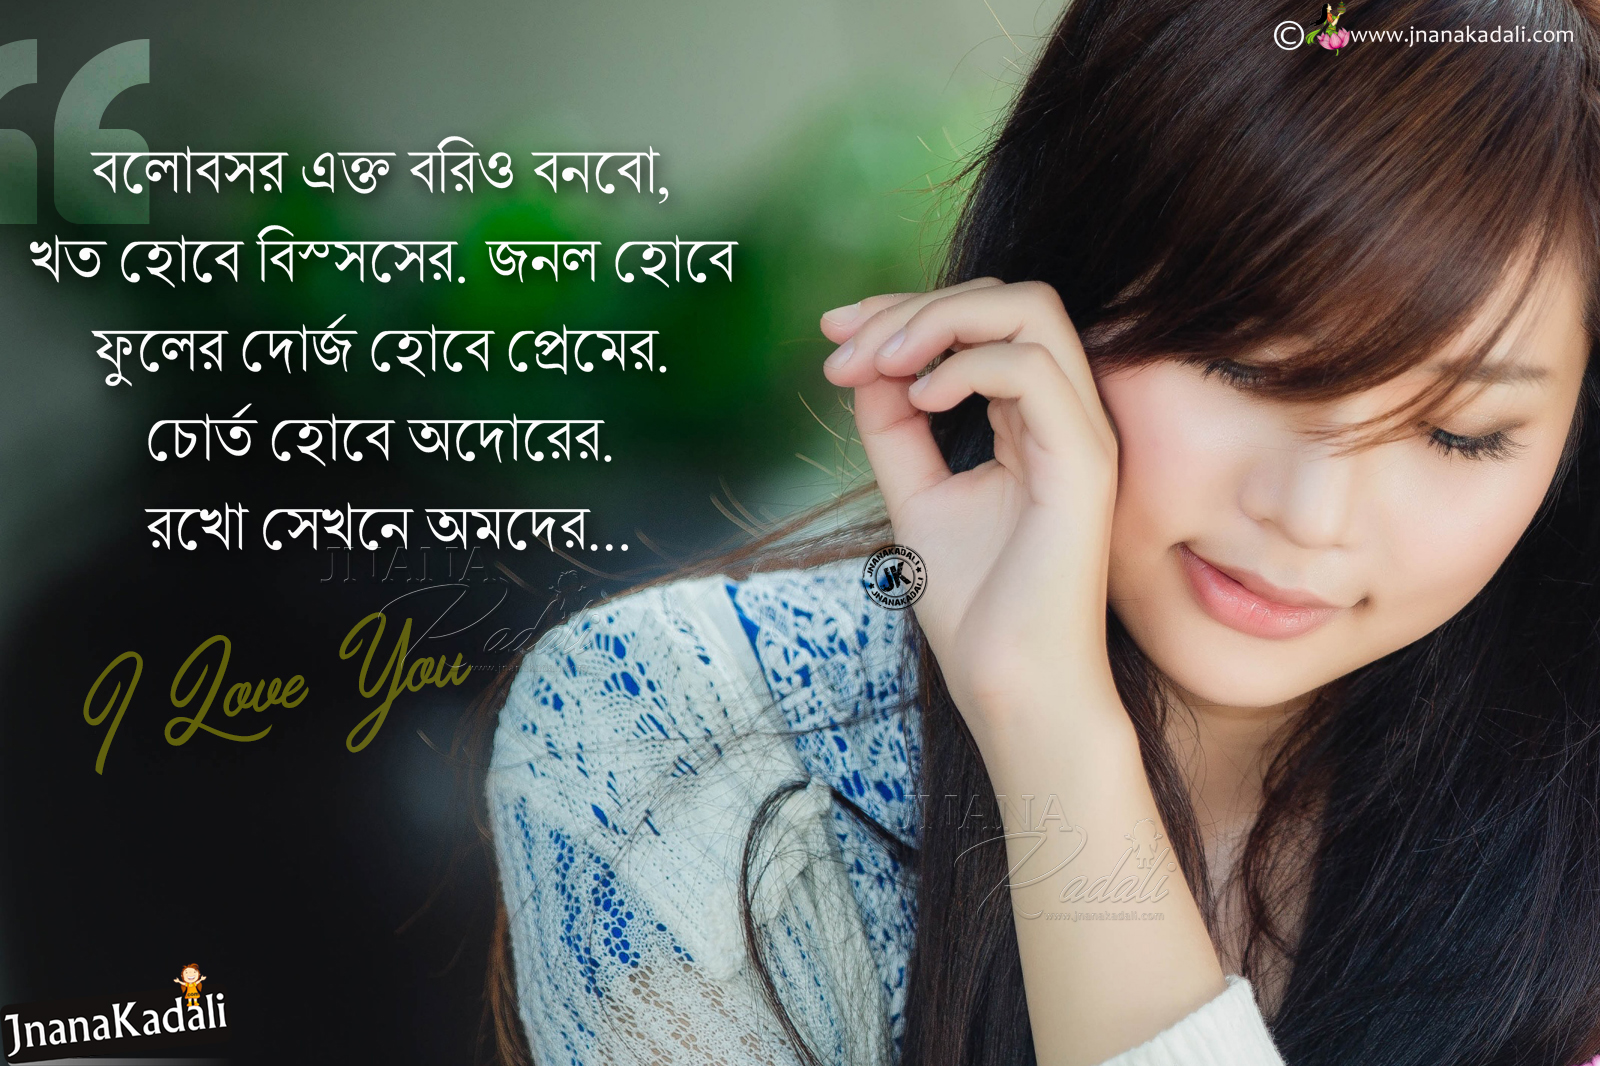 Bengali Heart Touching Quotes: Heart Touching Love Quotes Messages Sayings In Bengali